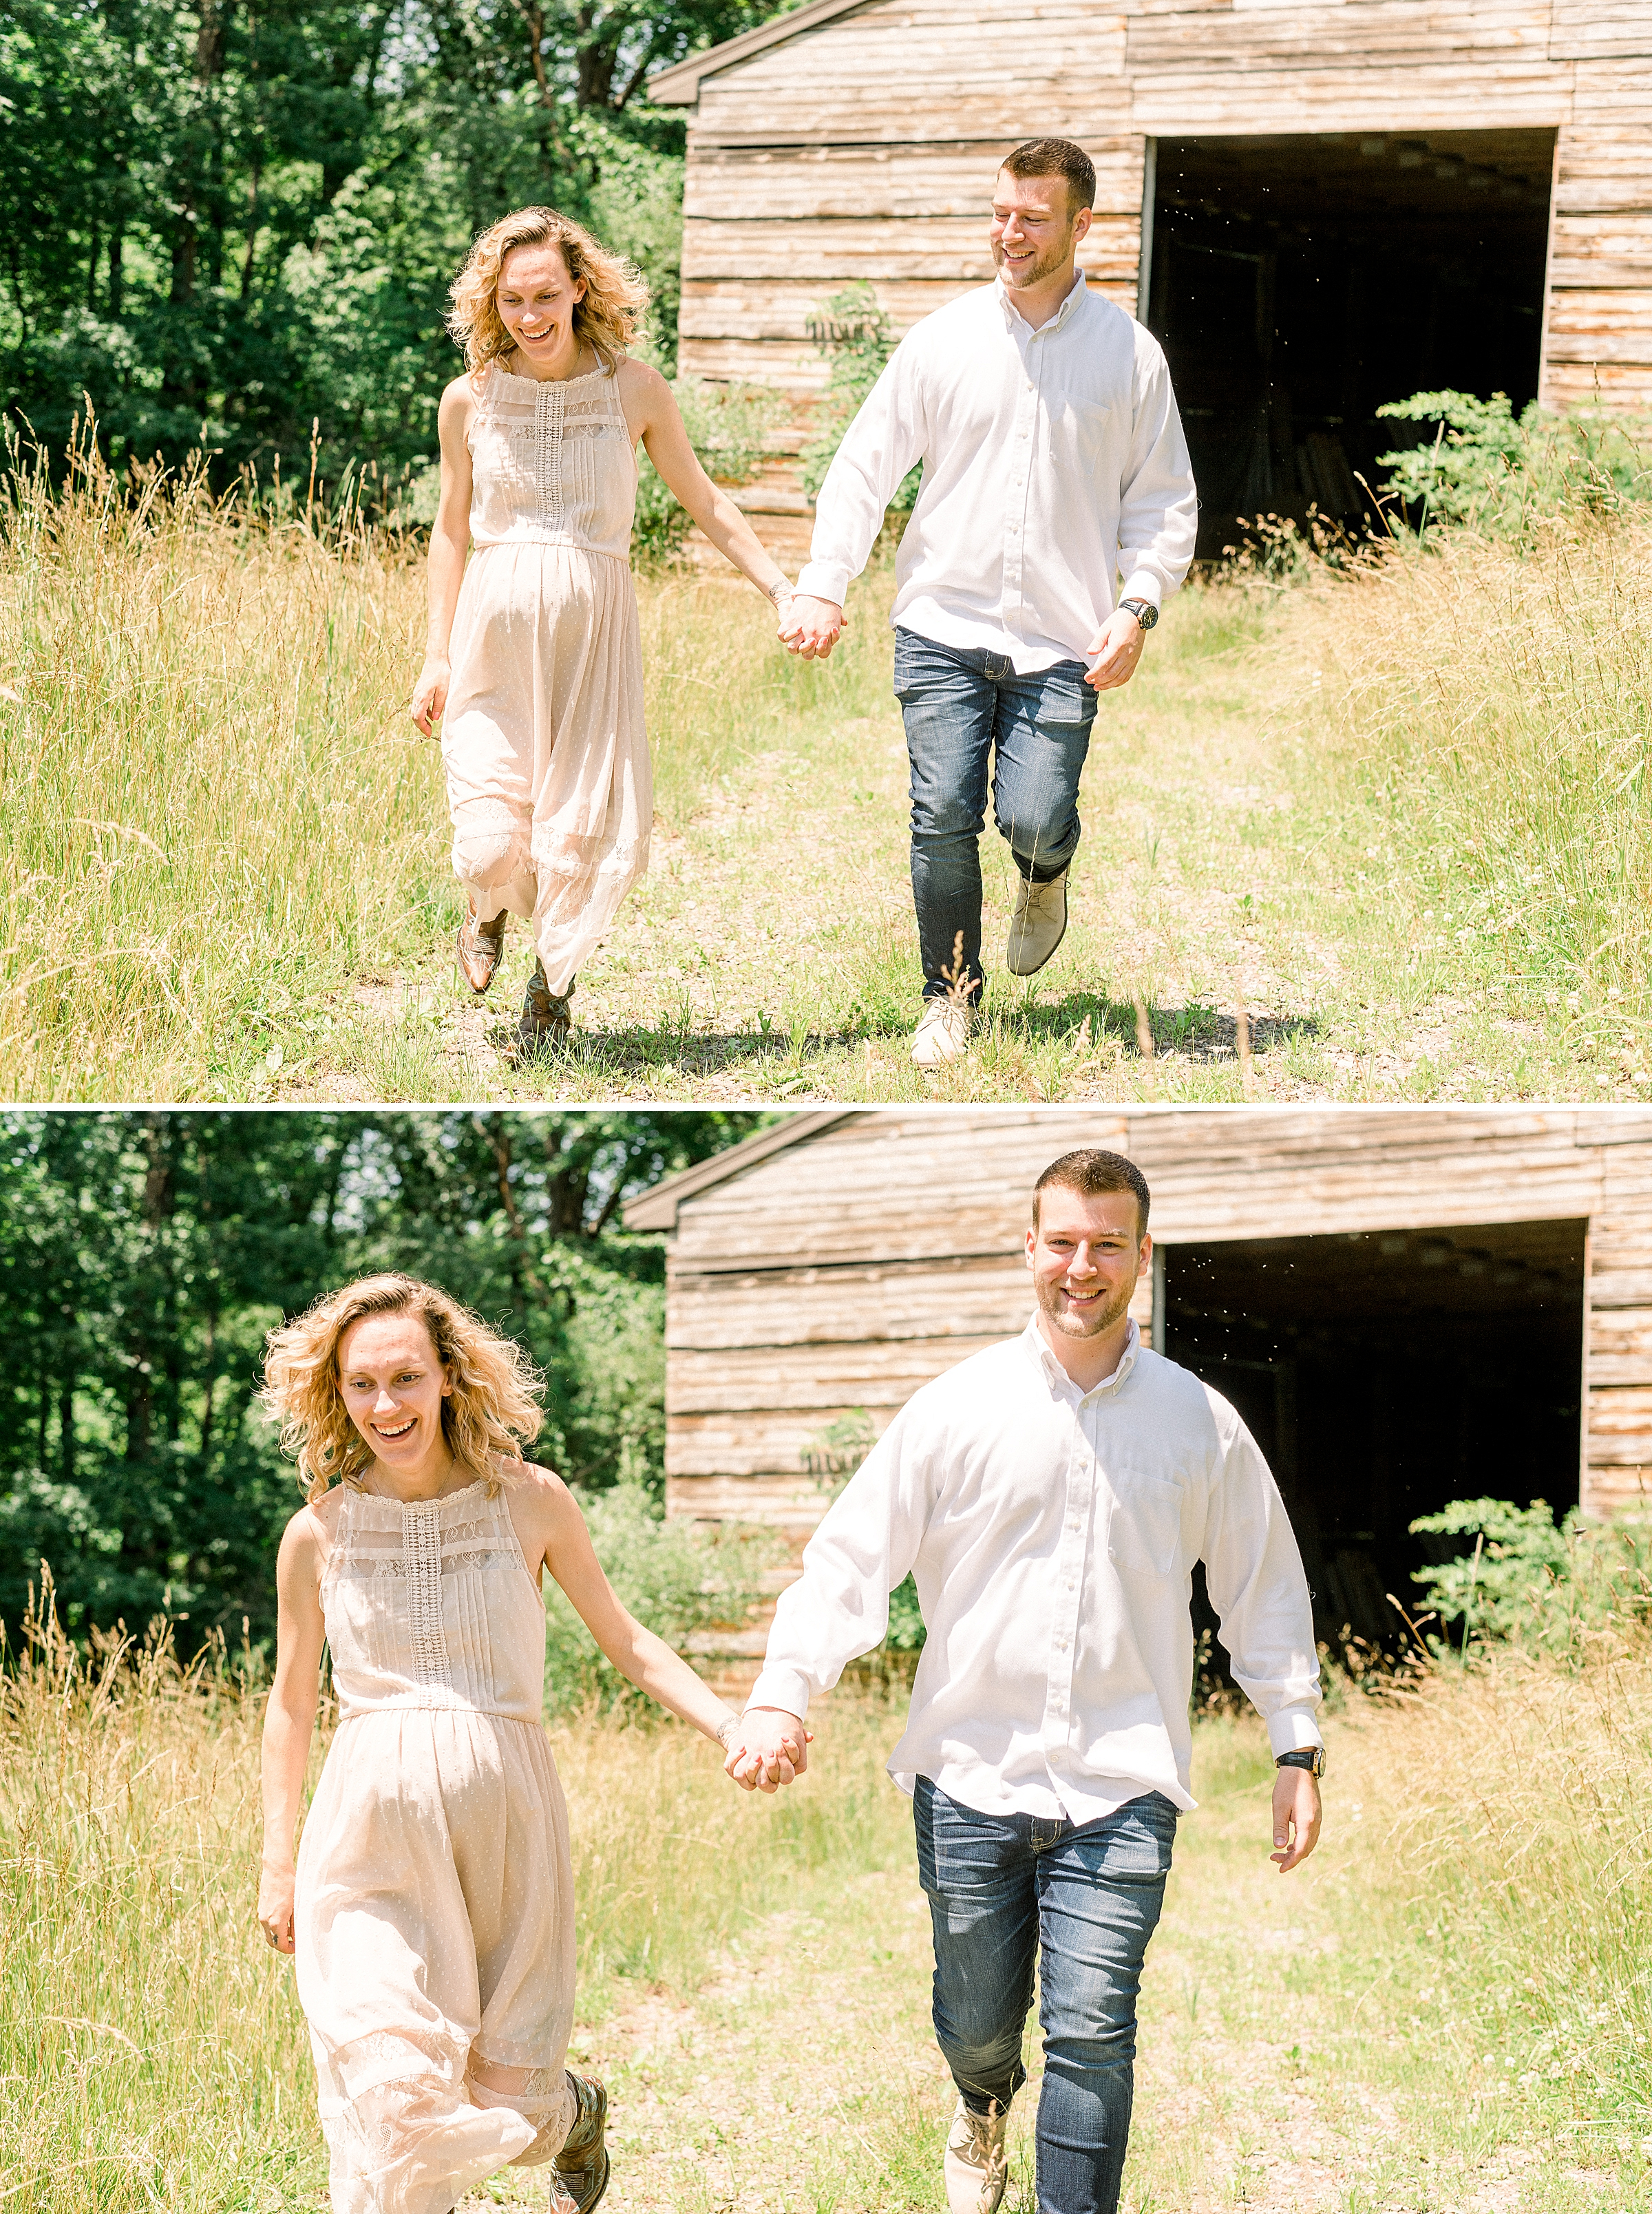 Couple running and laughing on a New Jersey farm